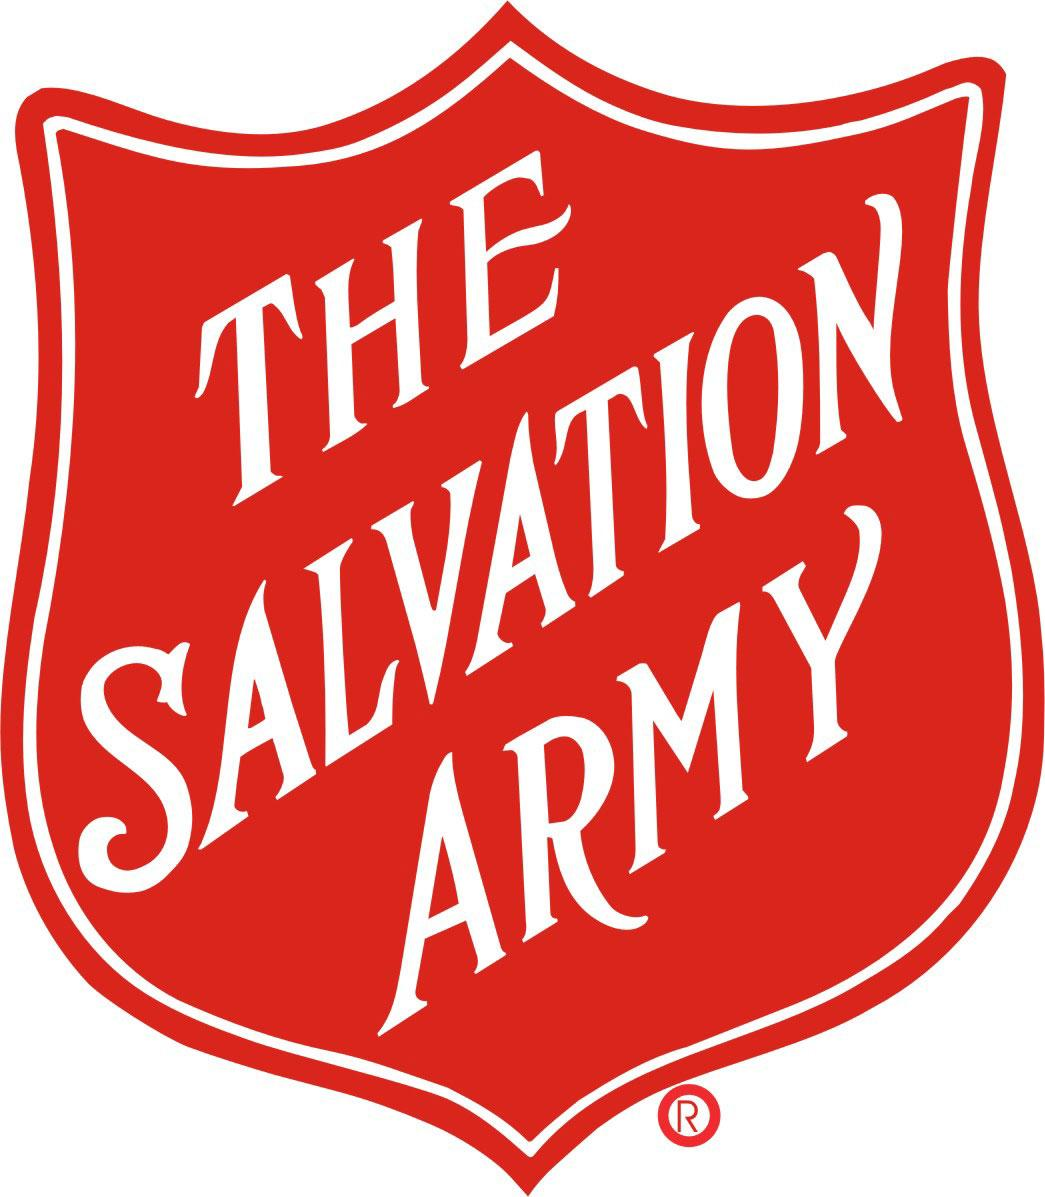 Uniform and flag portland tabernacle corps the salvation army shield is the trademark of the work in human services the red shield service began in 1896 the origin of the shape seems to indicate biocorpaavc Choice Image